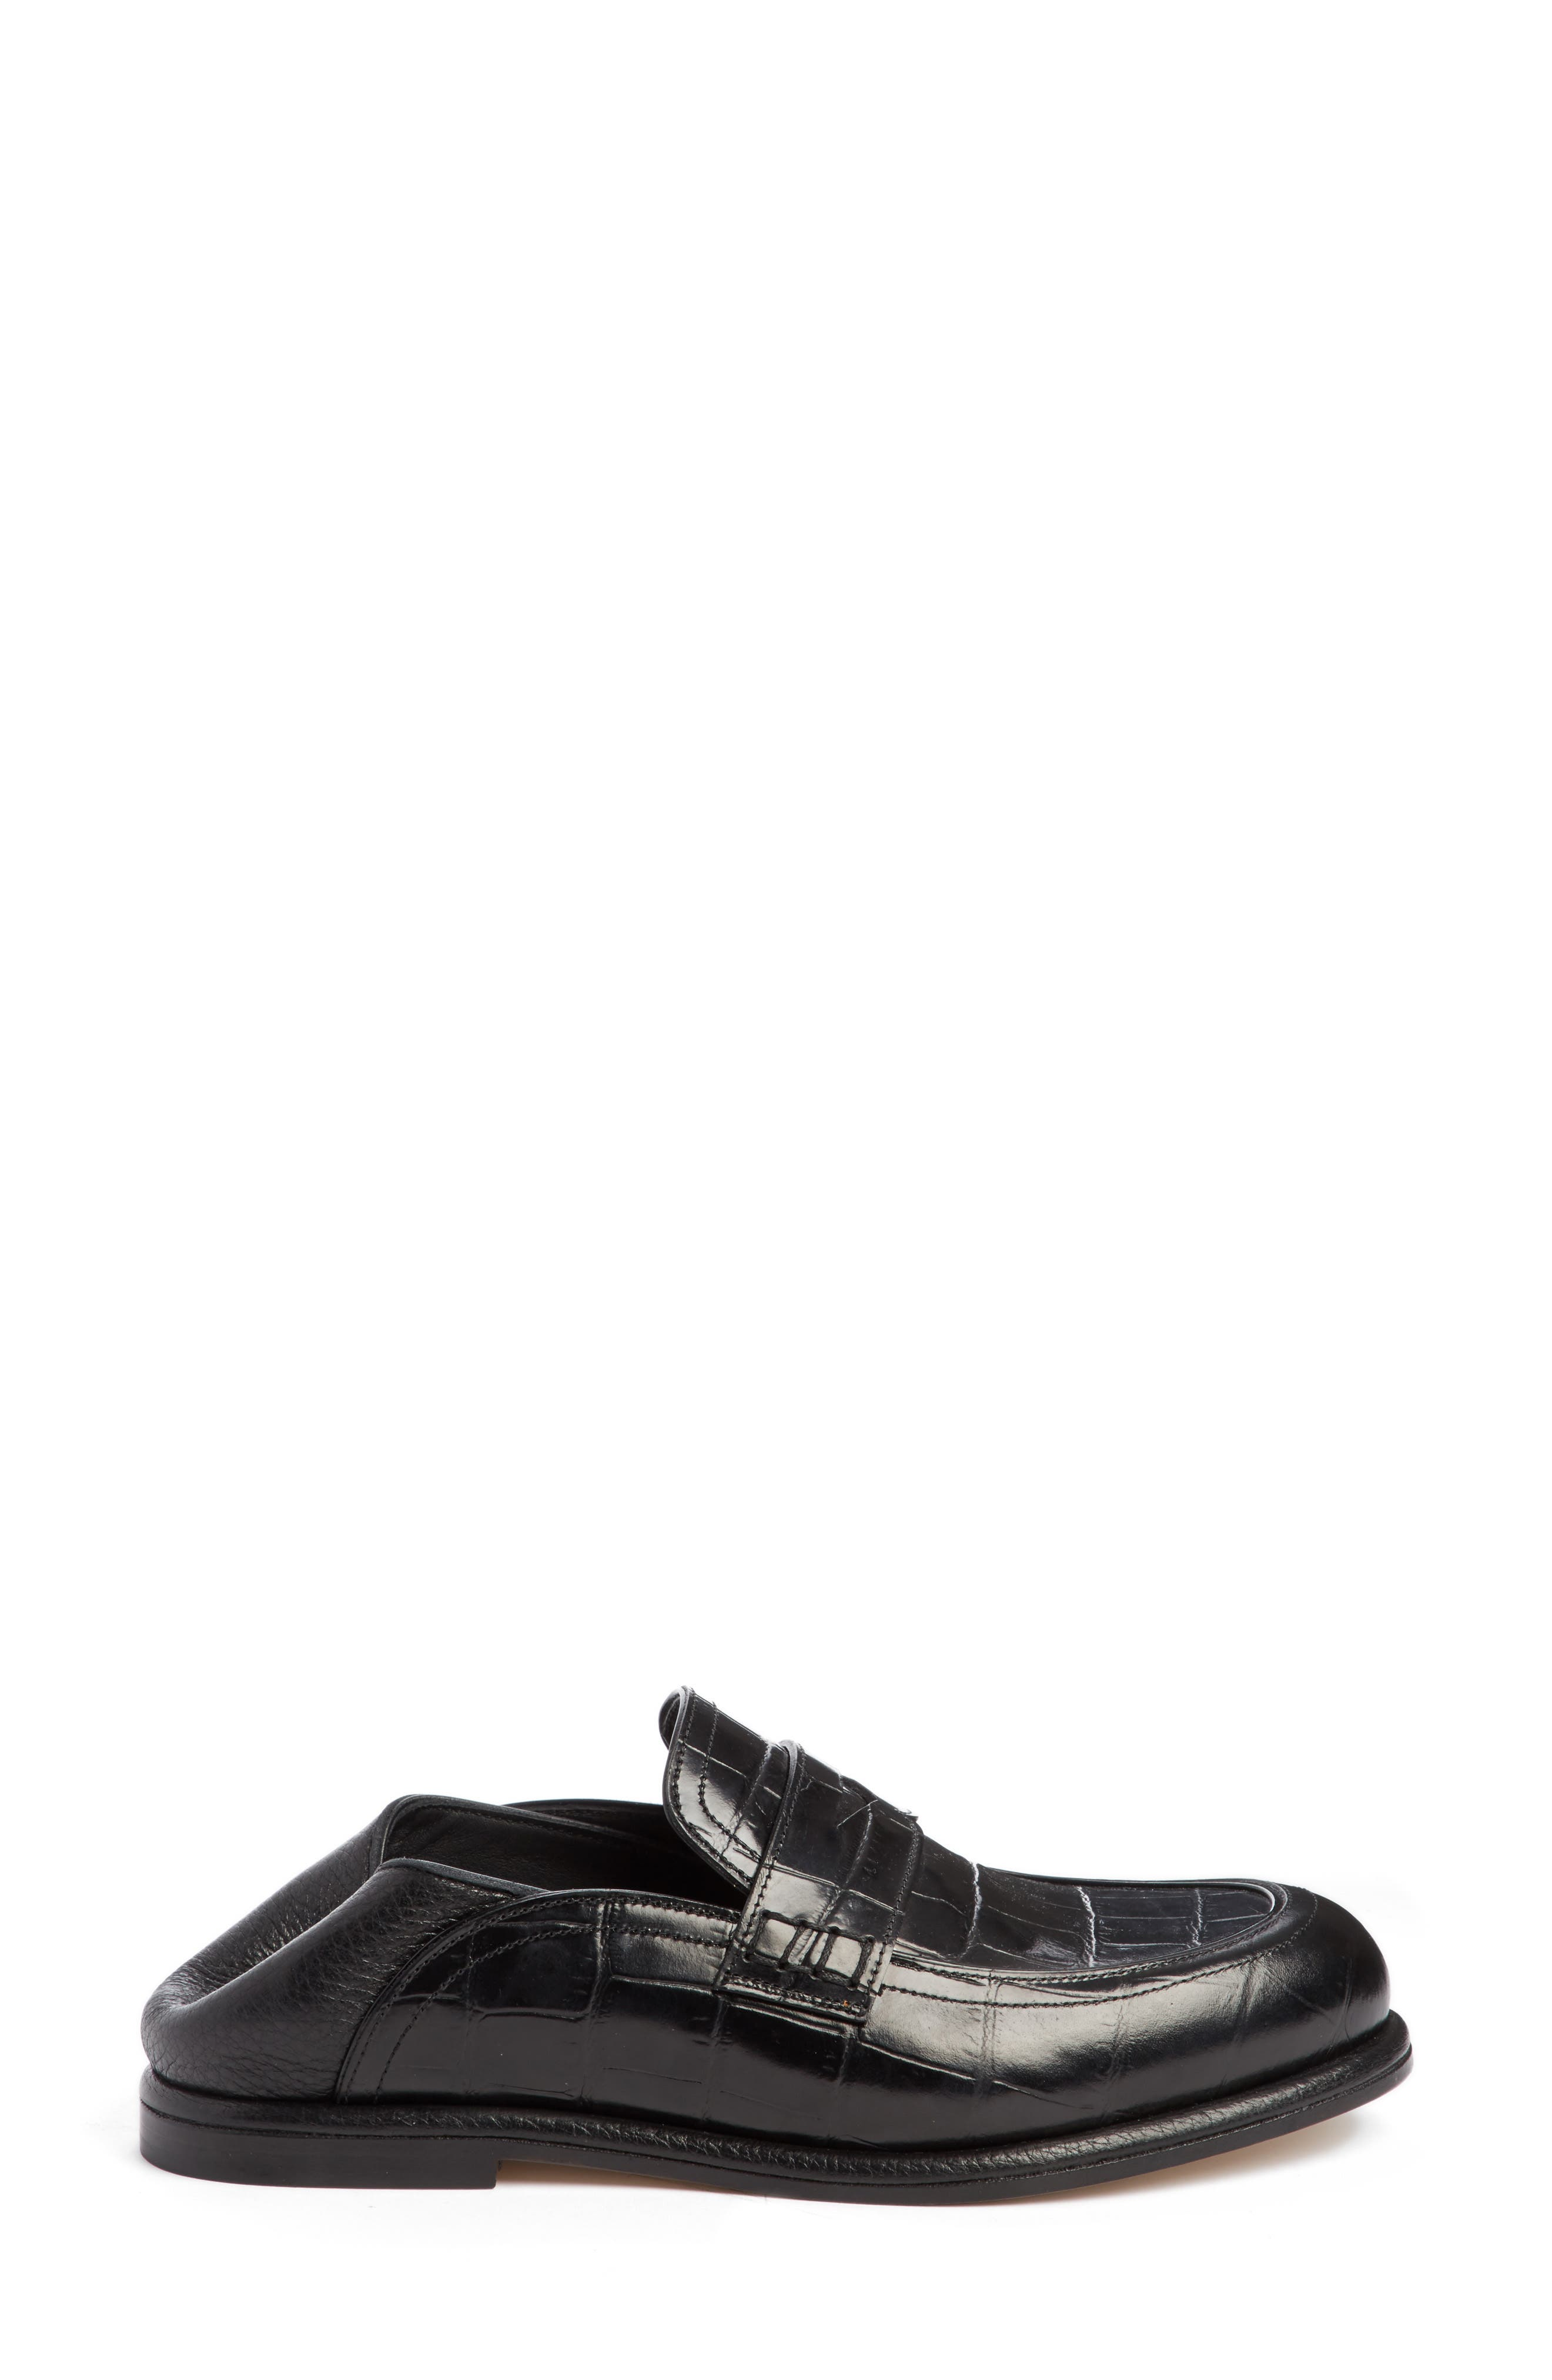 Croc Embossed Convertible Loafer,                             Alternate thumbnail 3, color,                             012